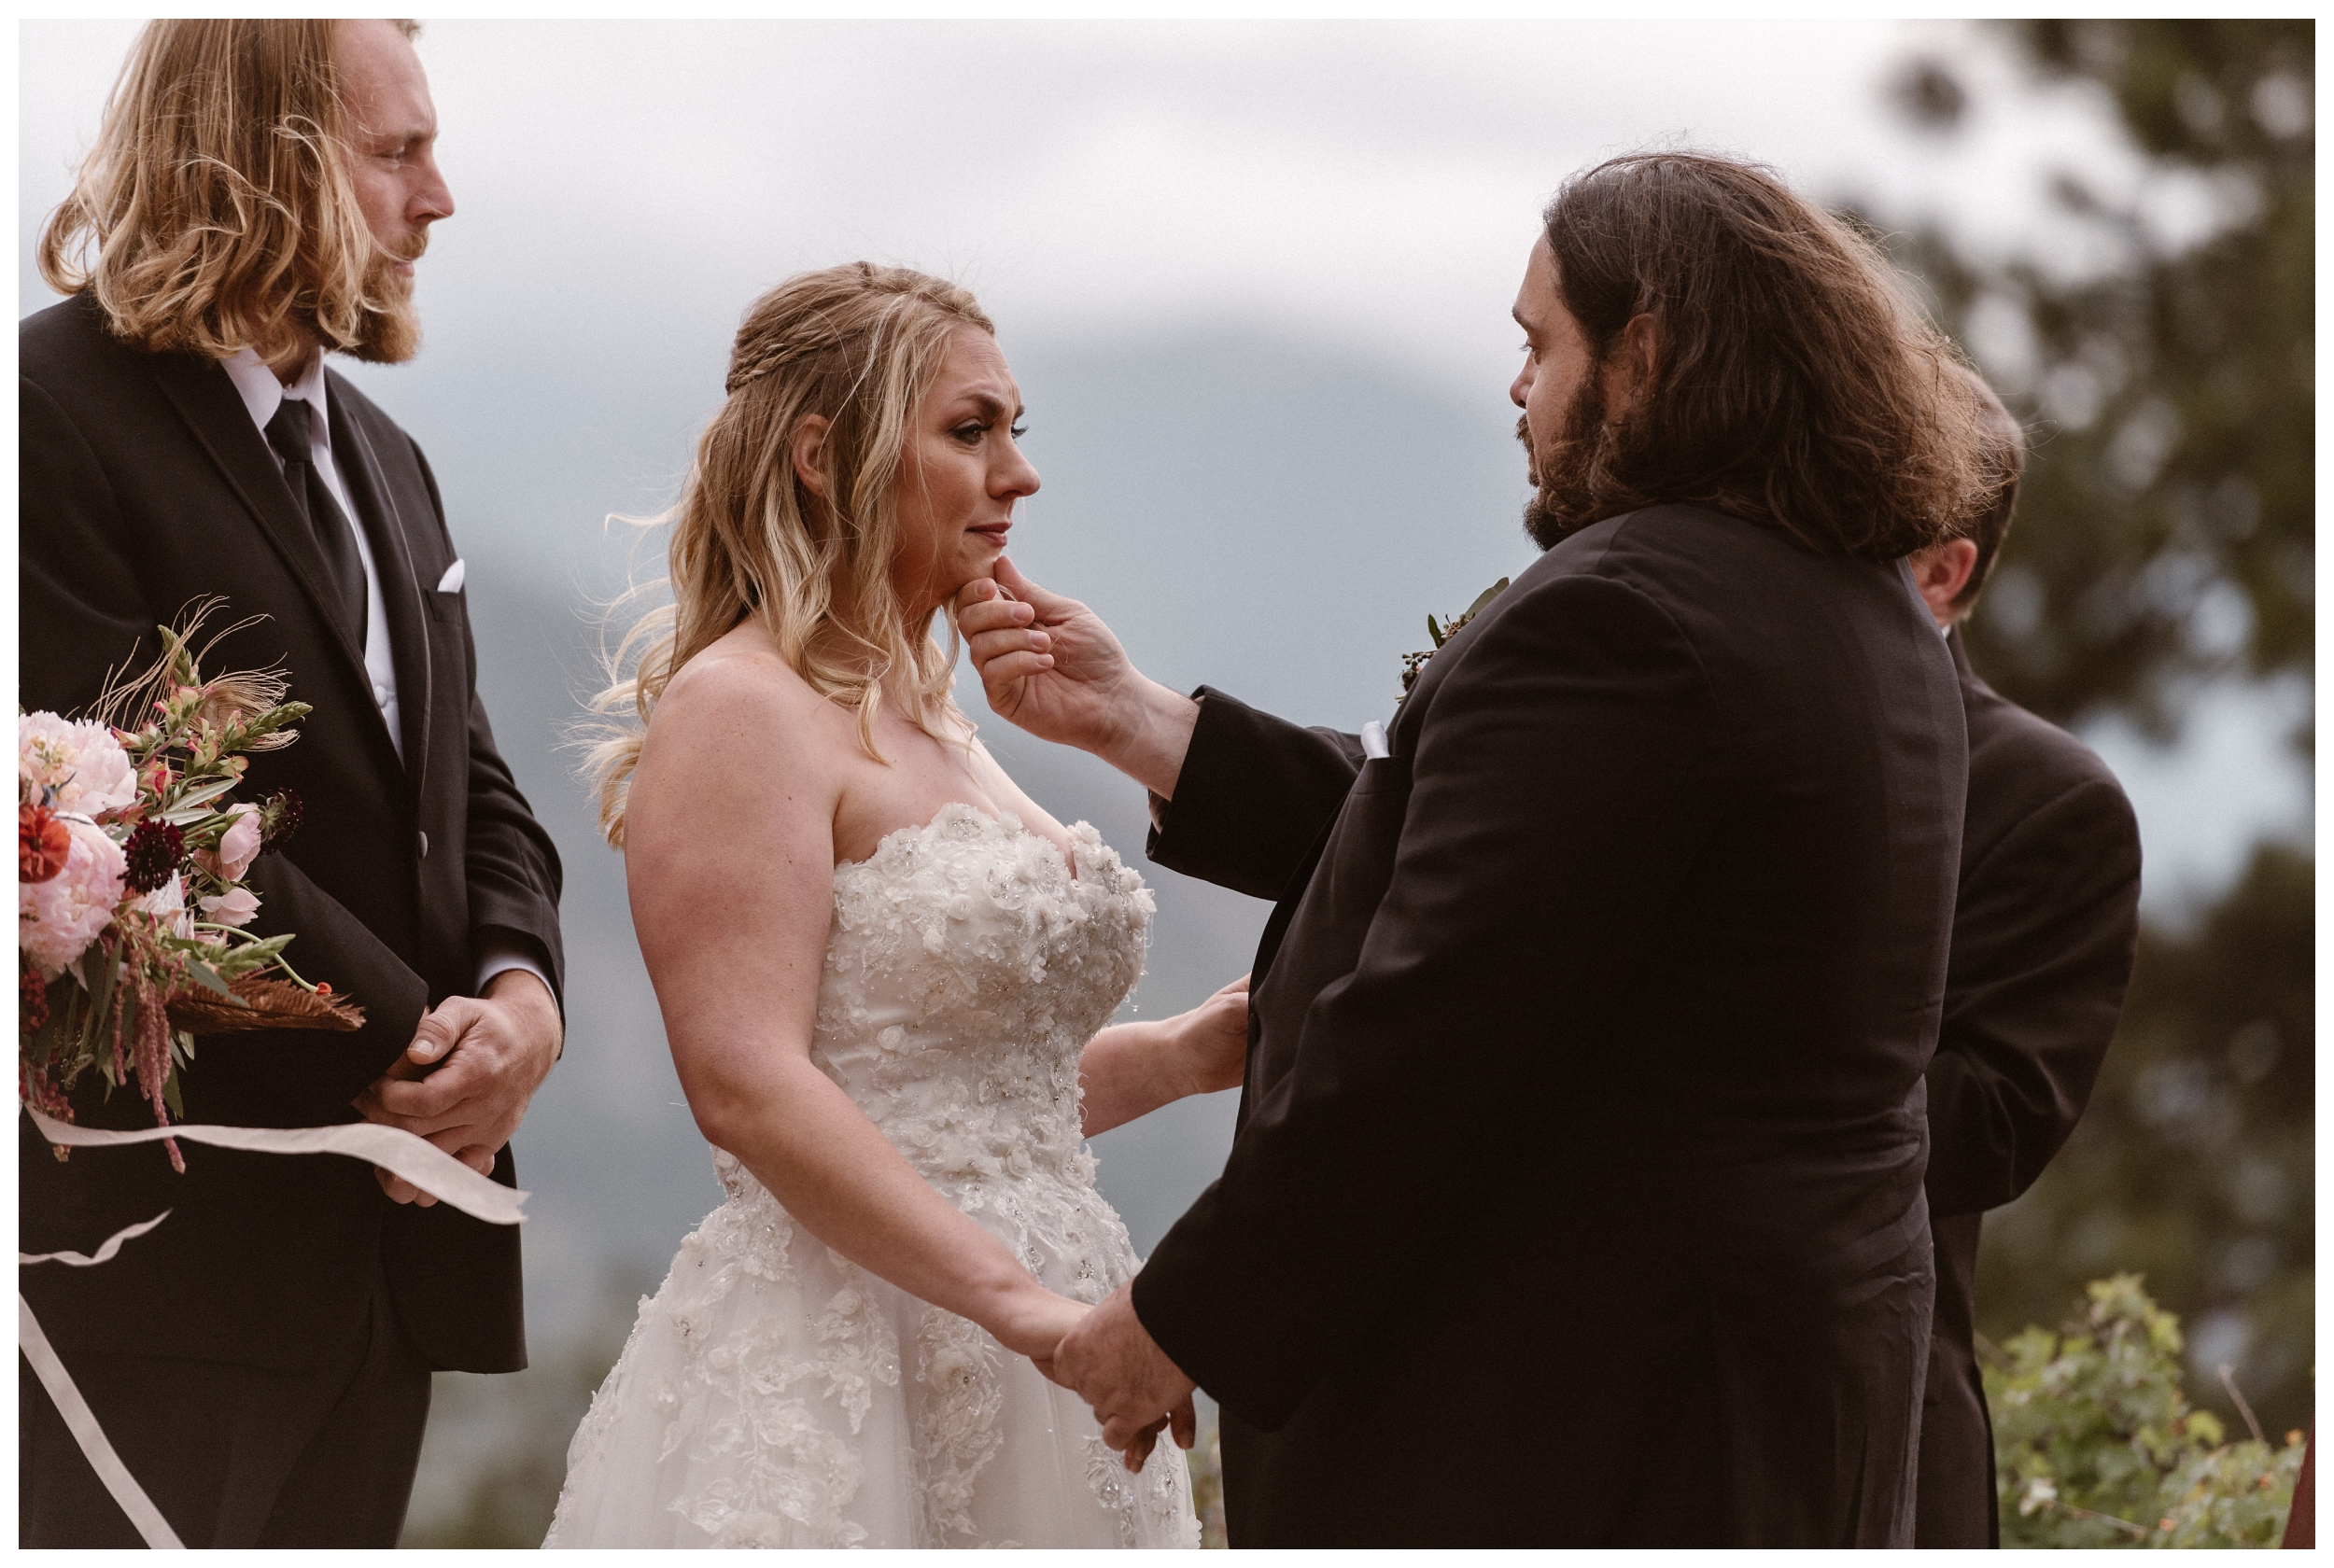 A tearful and emotional moment during Alicia and Zach's intimate elopement ceremony at Rocky Mountain National Park in Estes Park, Colorado. Photo by Adventure Instead, Maddie Mae.